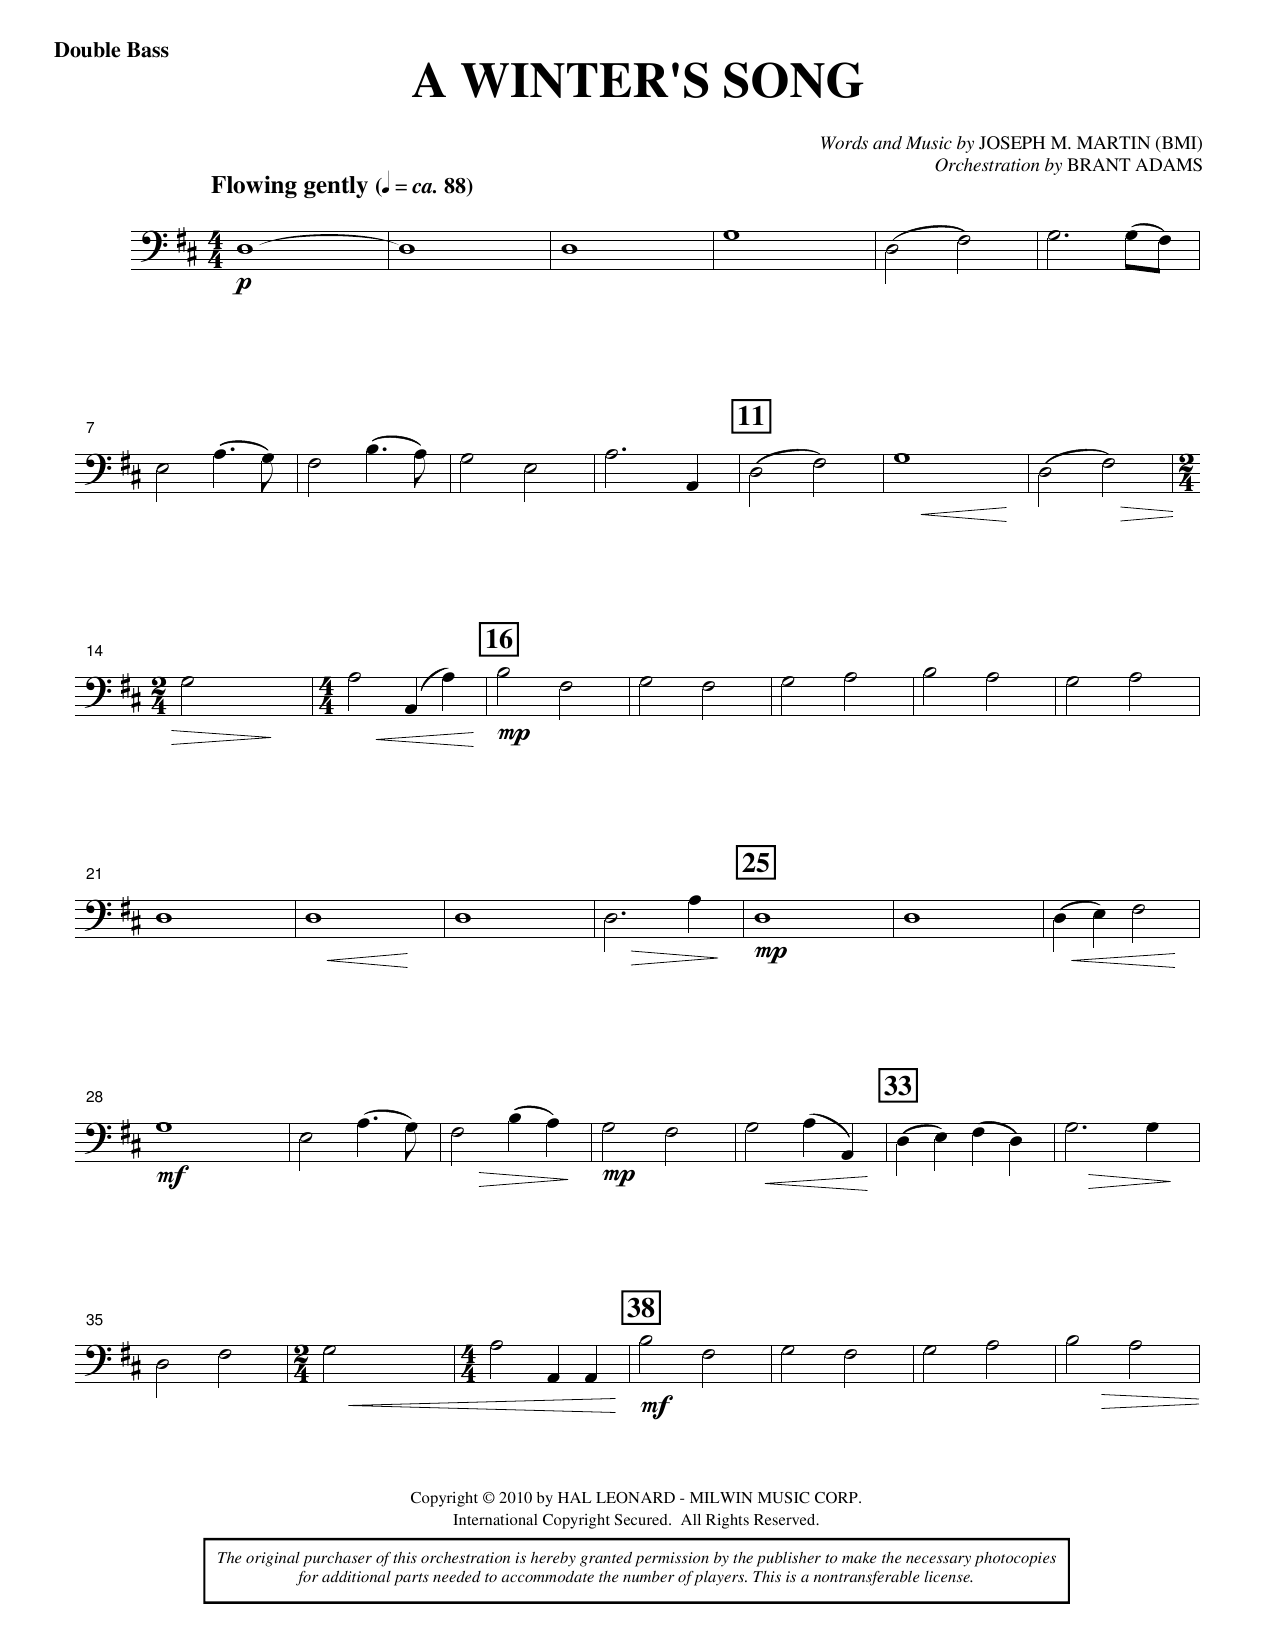 A Winter's Song (from Winter's Grace) - Double Bass Sheet Music